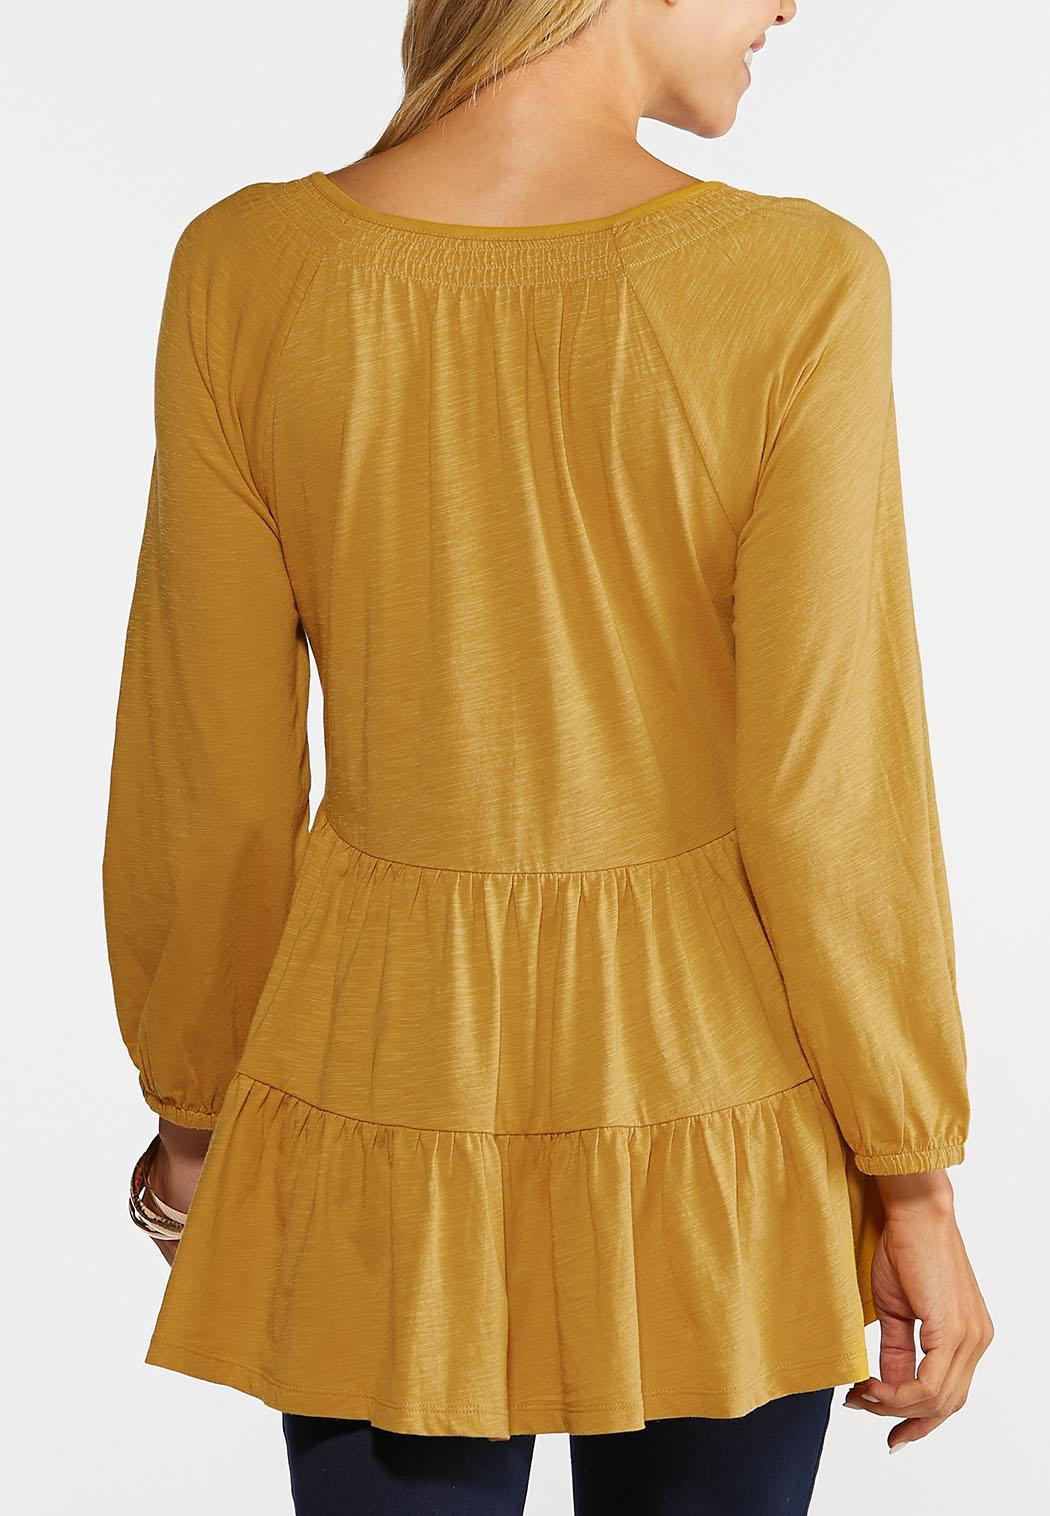 Plus Size Sunny Tiered Top (Item #44391963)